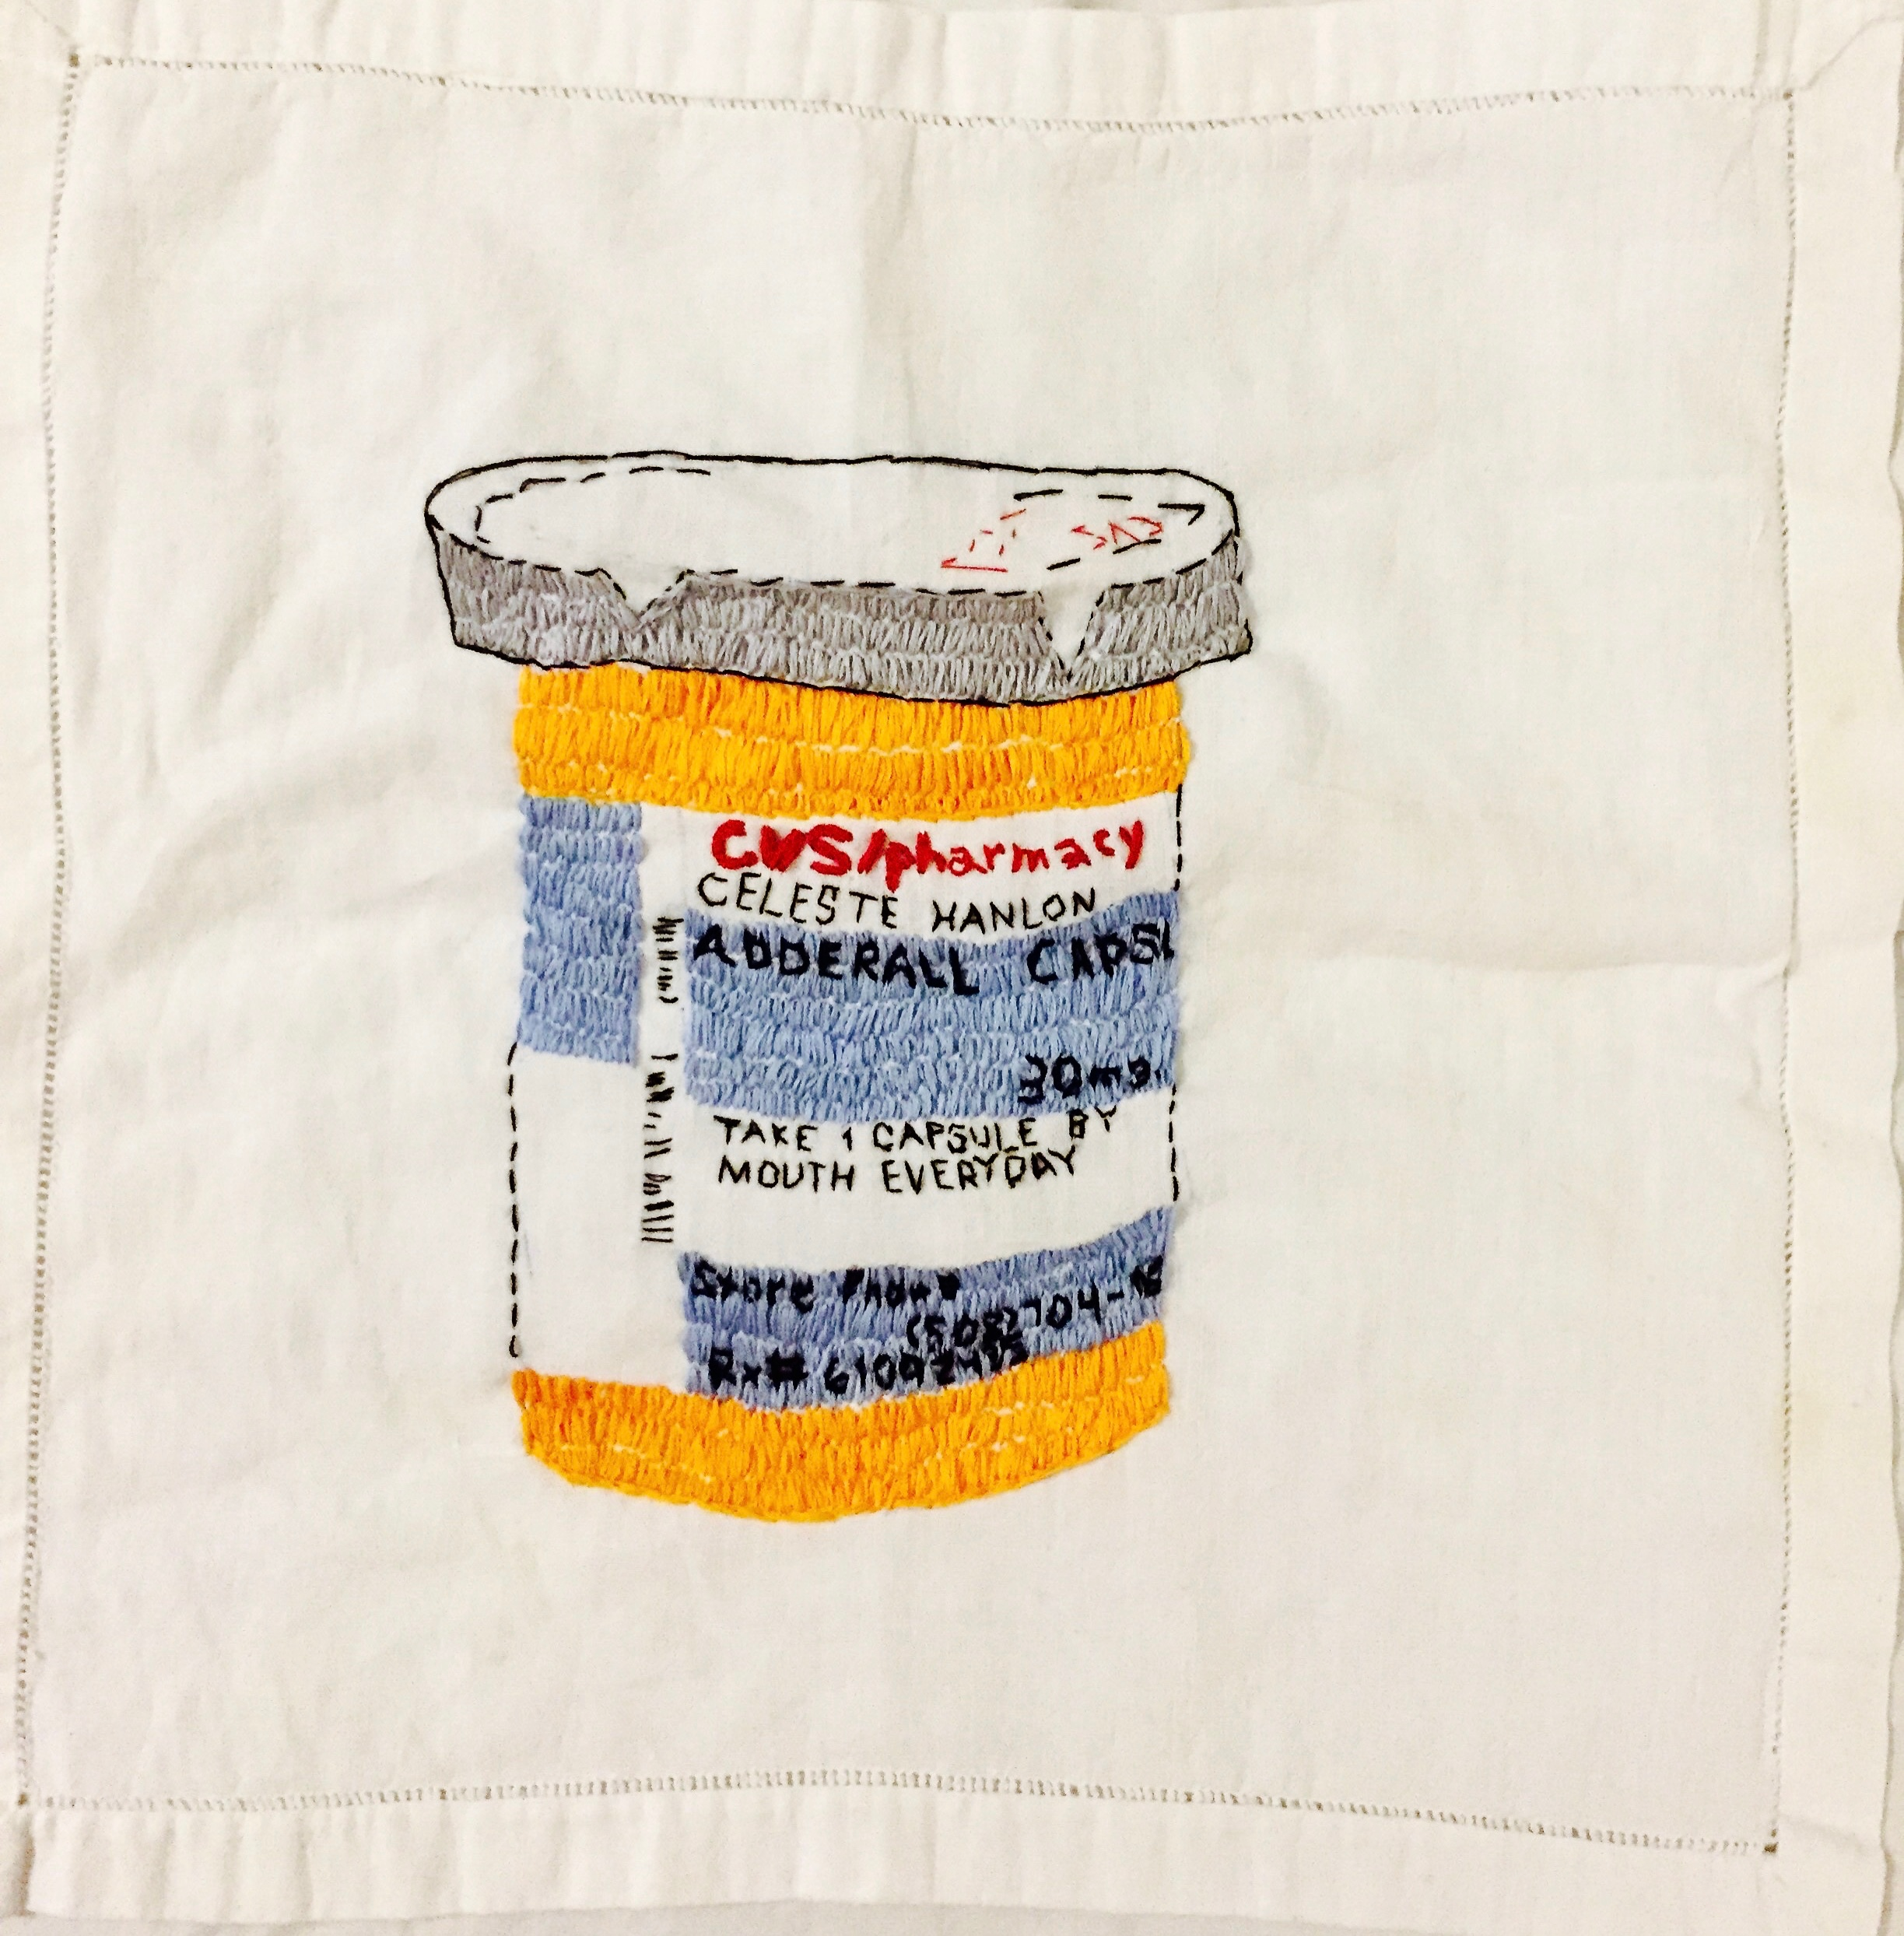 PHARMA SERIES-ADDERALL--EMBROIDERY ON A VINTAGE LINEN NAPKIN-24'X 36' 2018